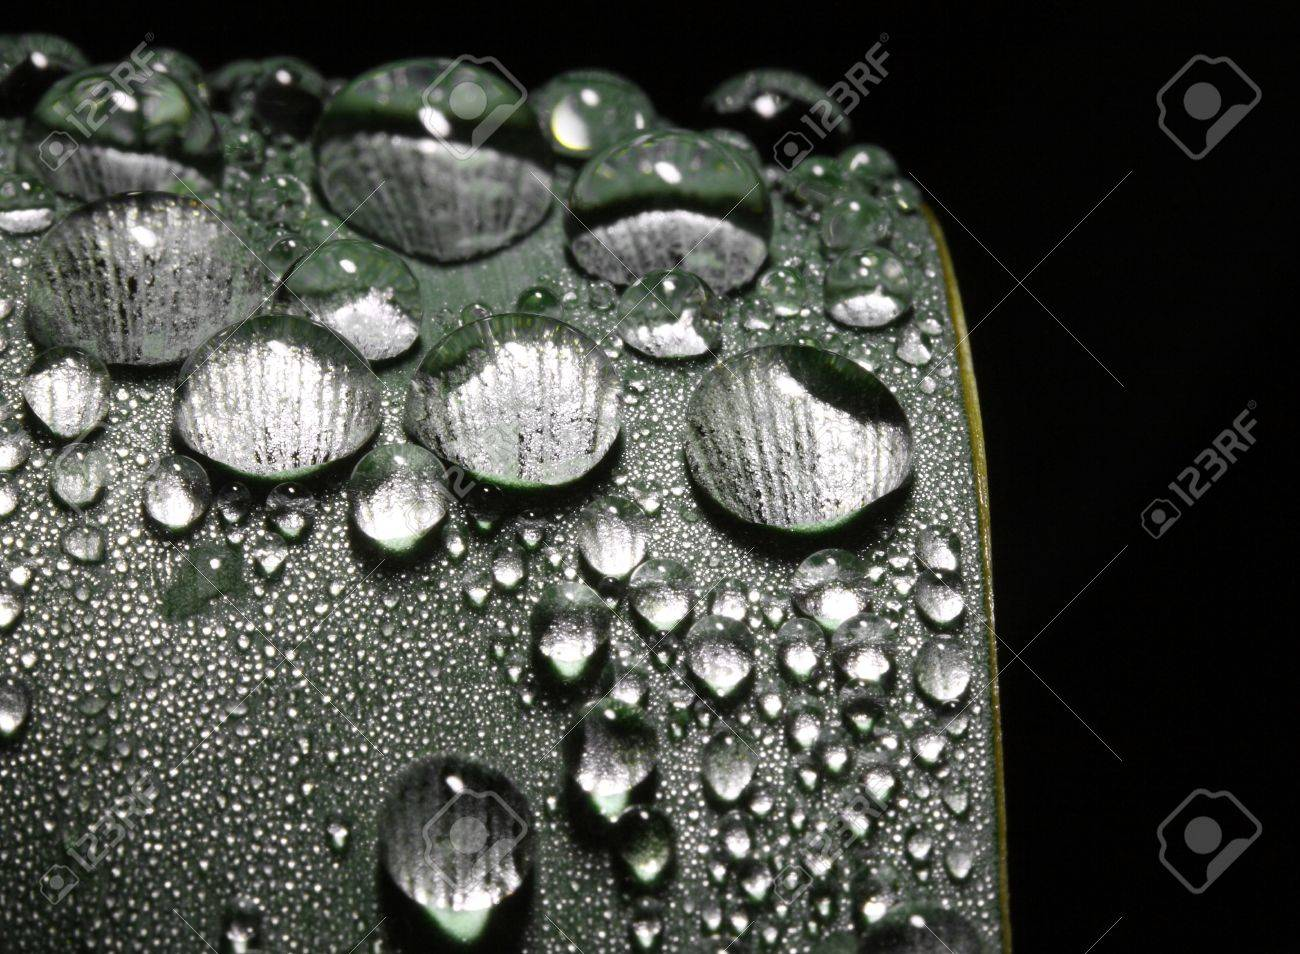 fine close up image of rain drop on leaf stock photo picture and